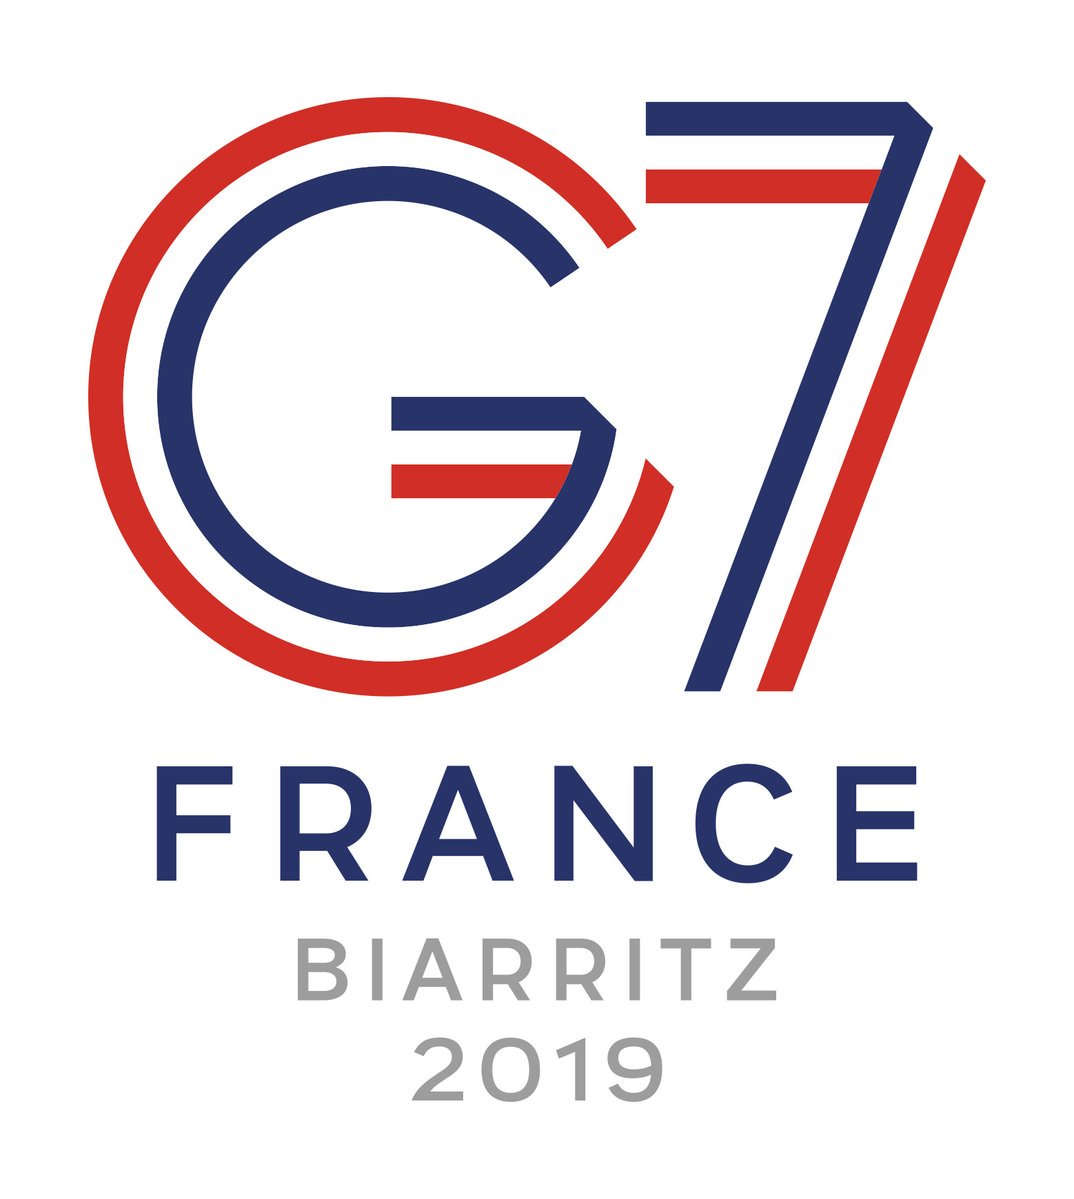 Logo of the G7 Biarritz Summit